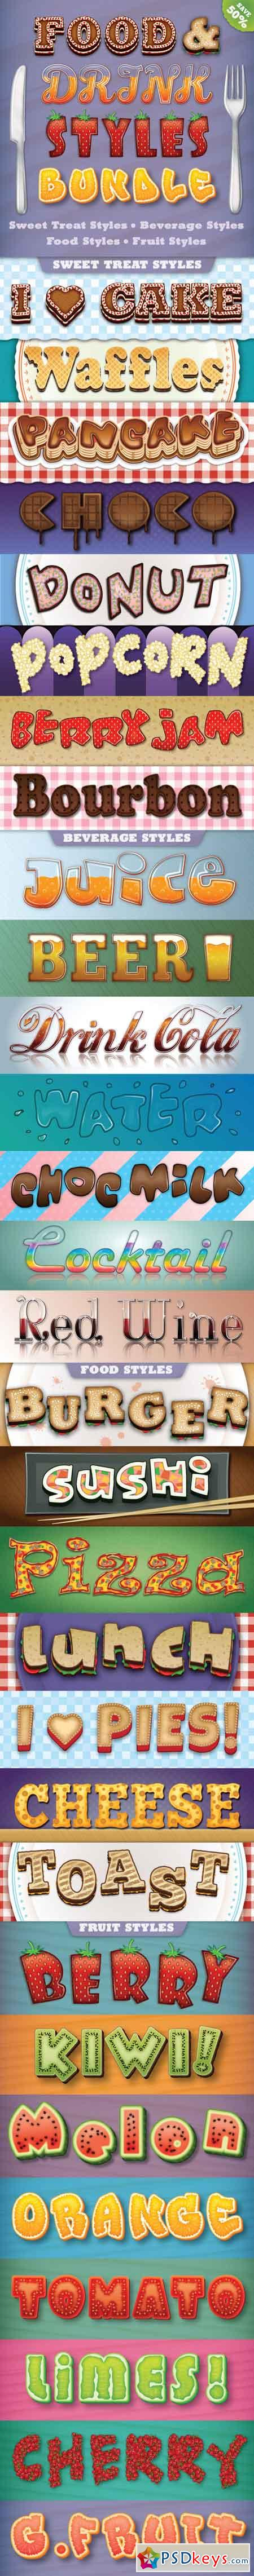 Food and Drink Styles Bundle 12286206